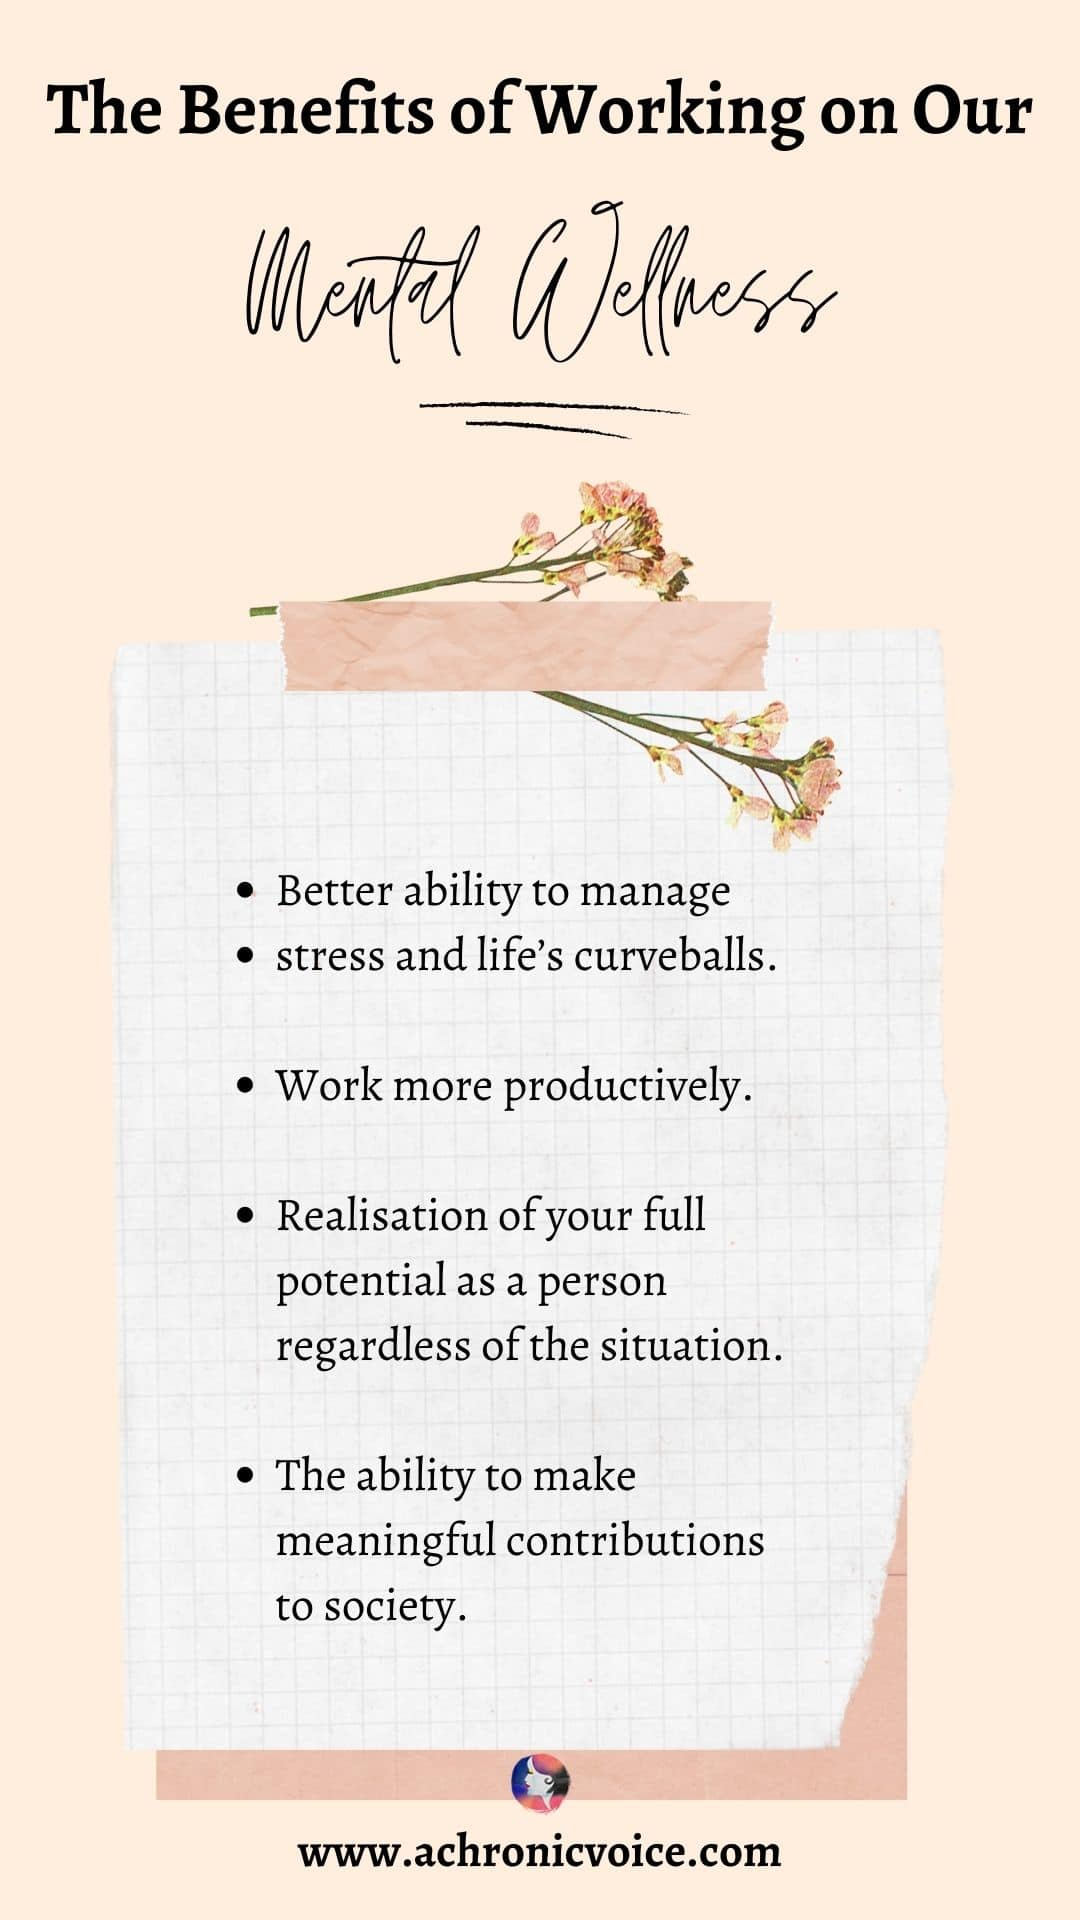 The Benefits of Working on Our Mental Wellness